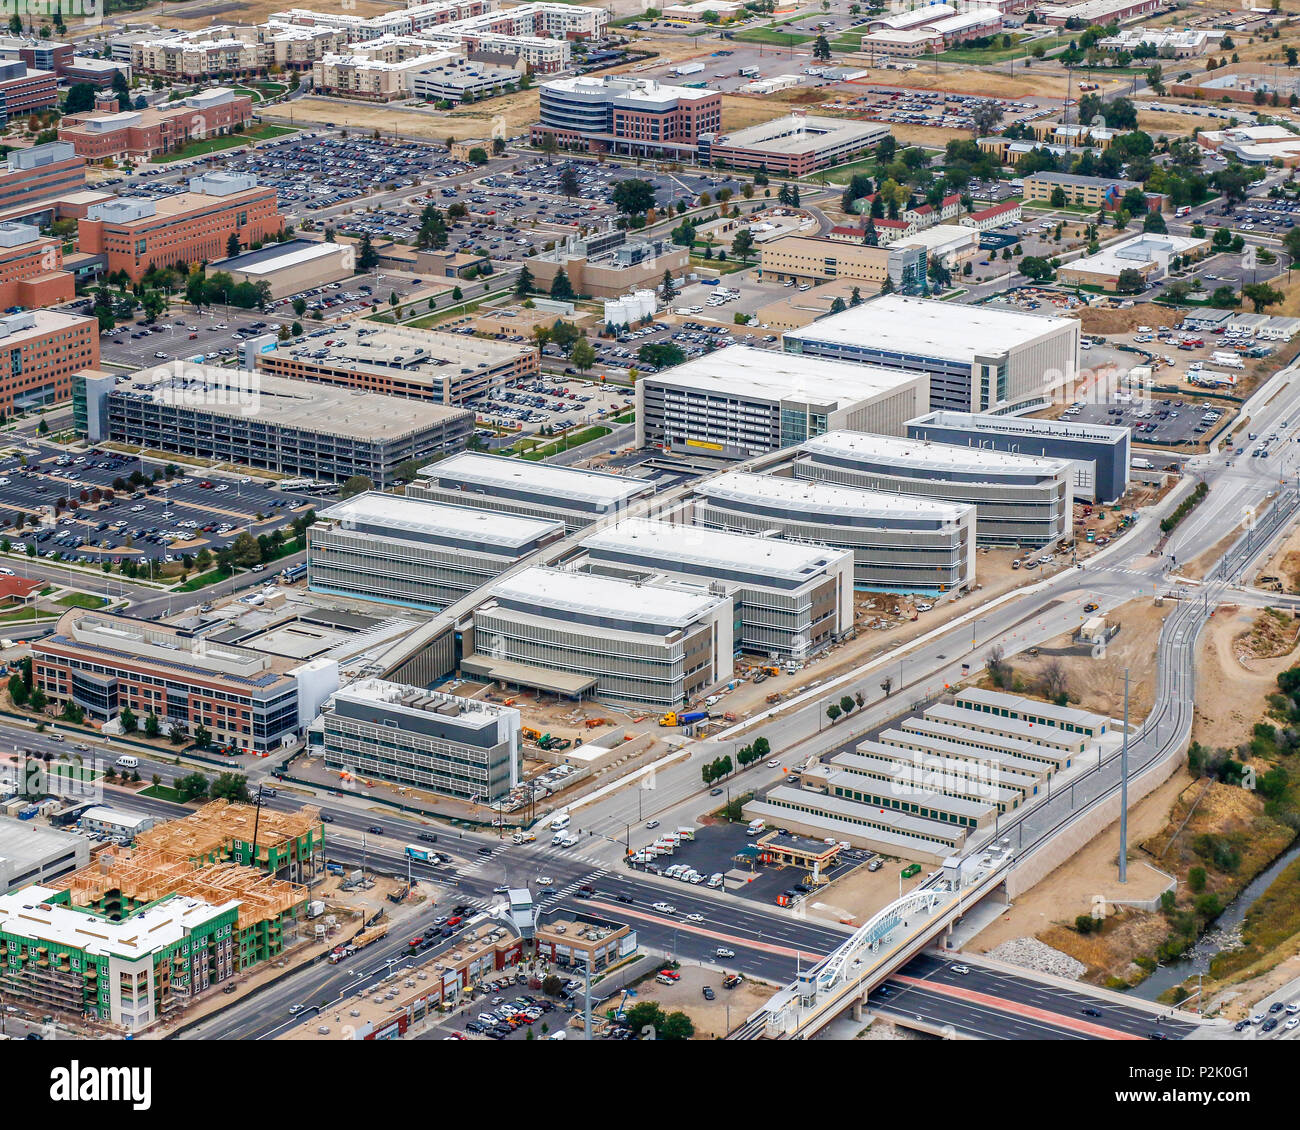 Kiewit Stock Photos & Kiewit Stock Images - Alamy